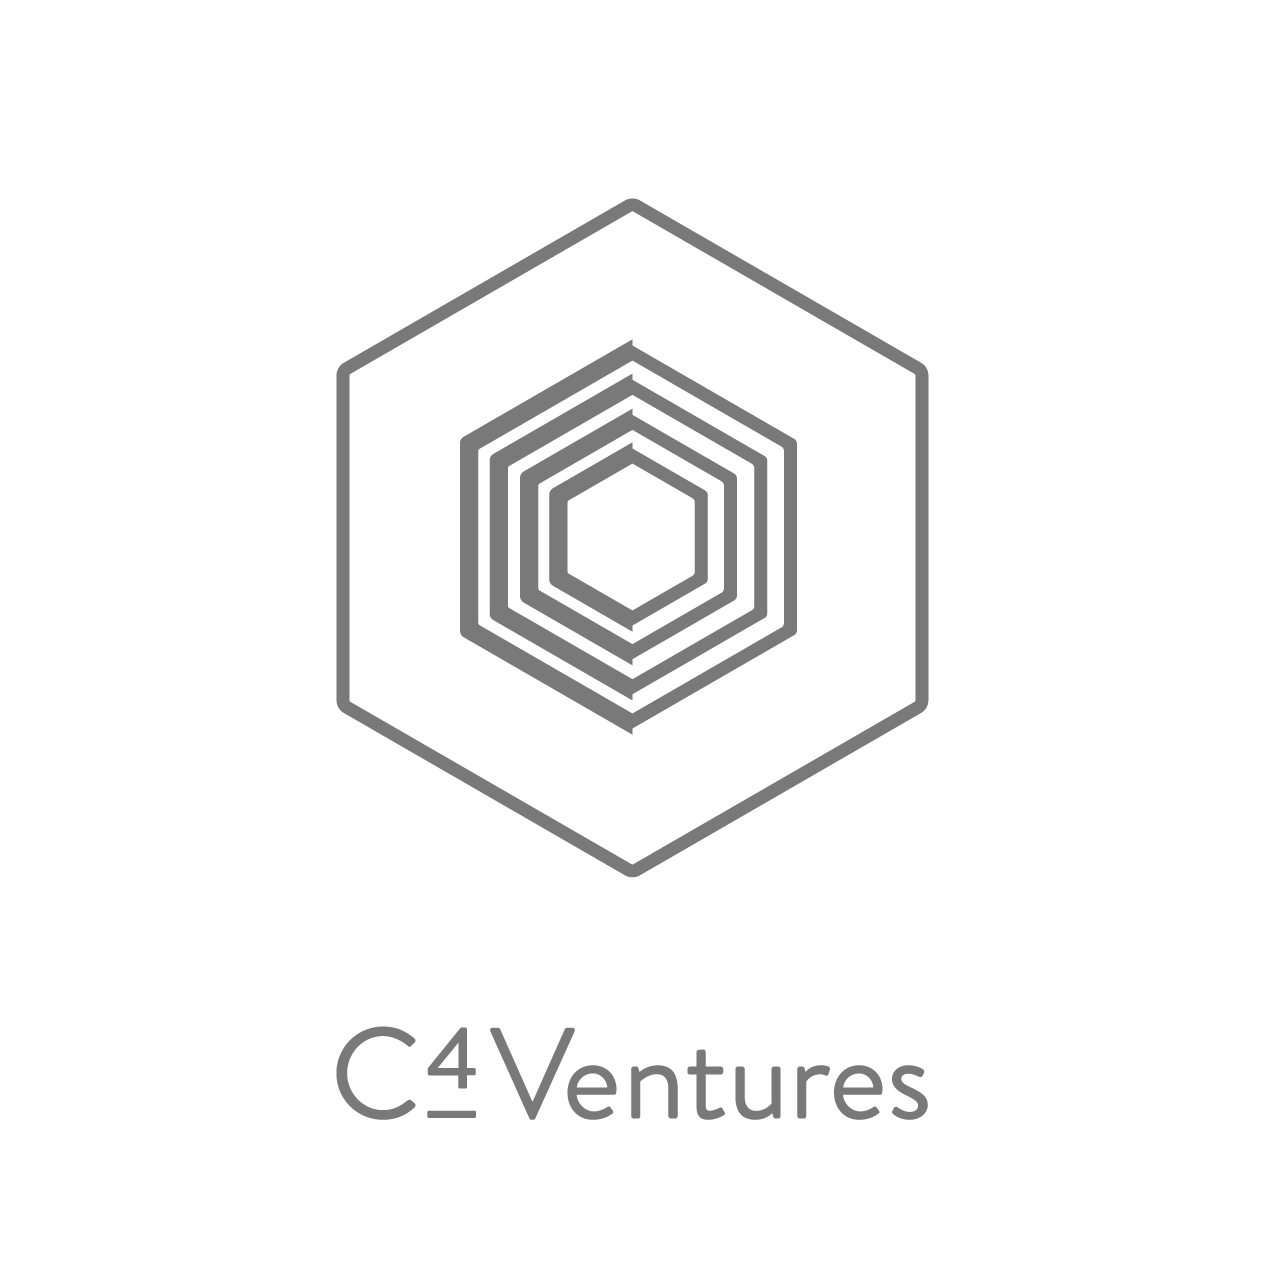 C4Ventures-Portrait-04.png